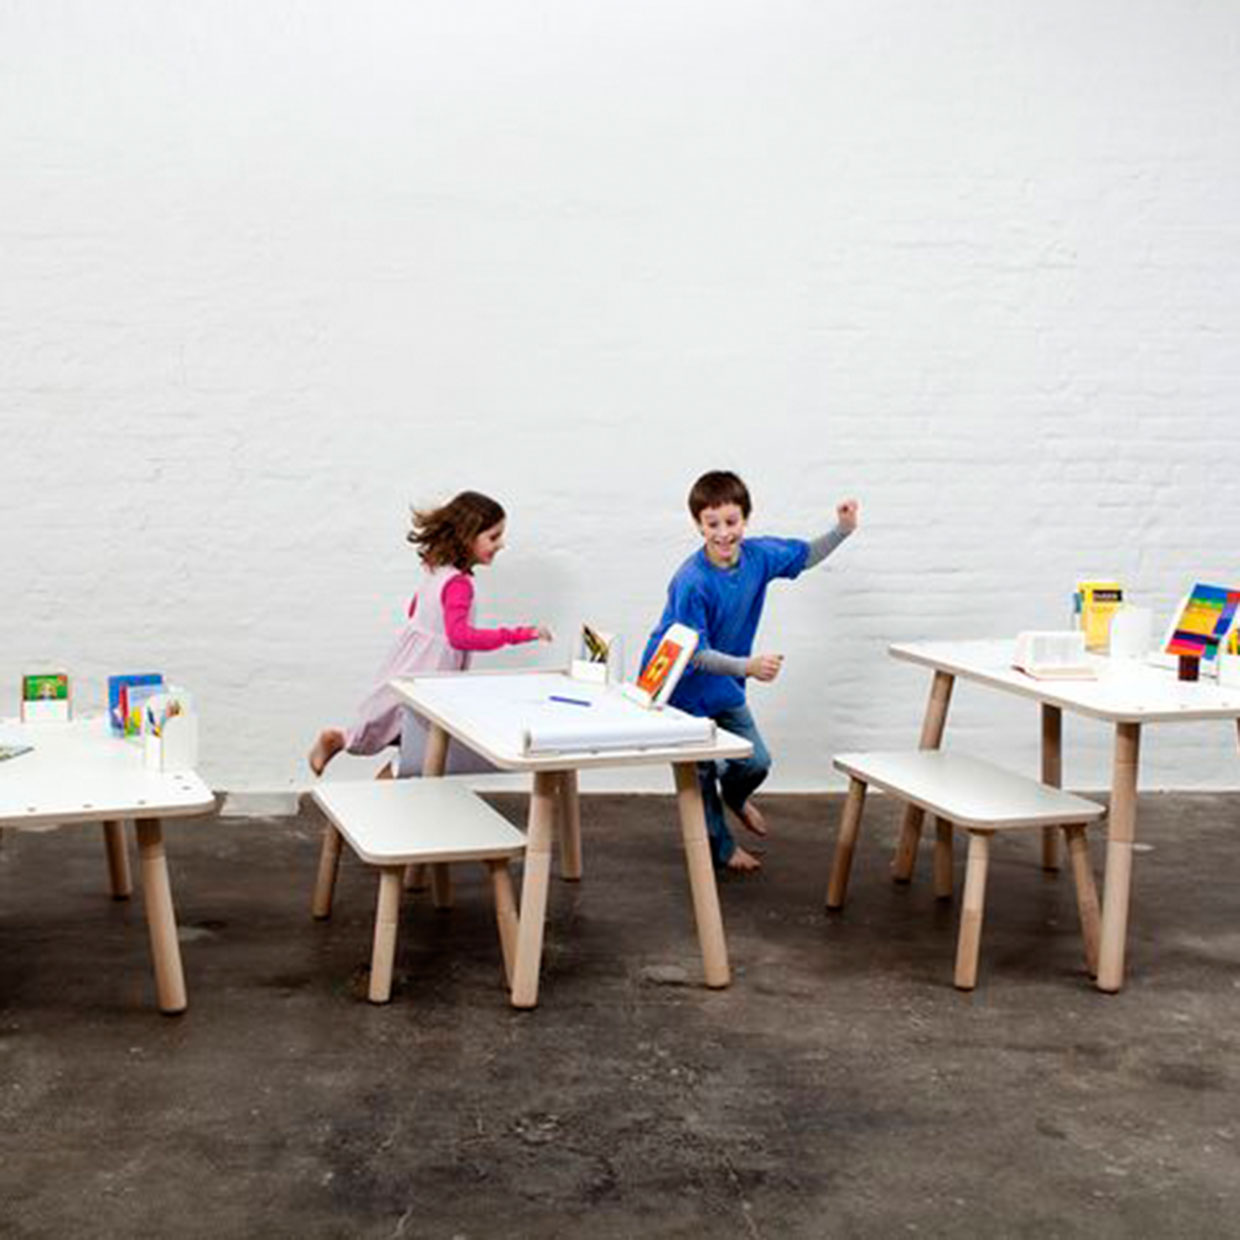 GROWING TABLE U2013 Desk For Children That Grows By Pure Position